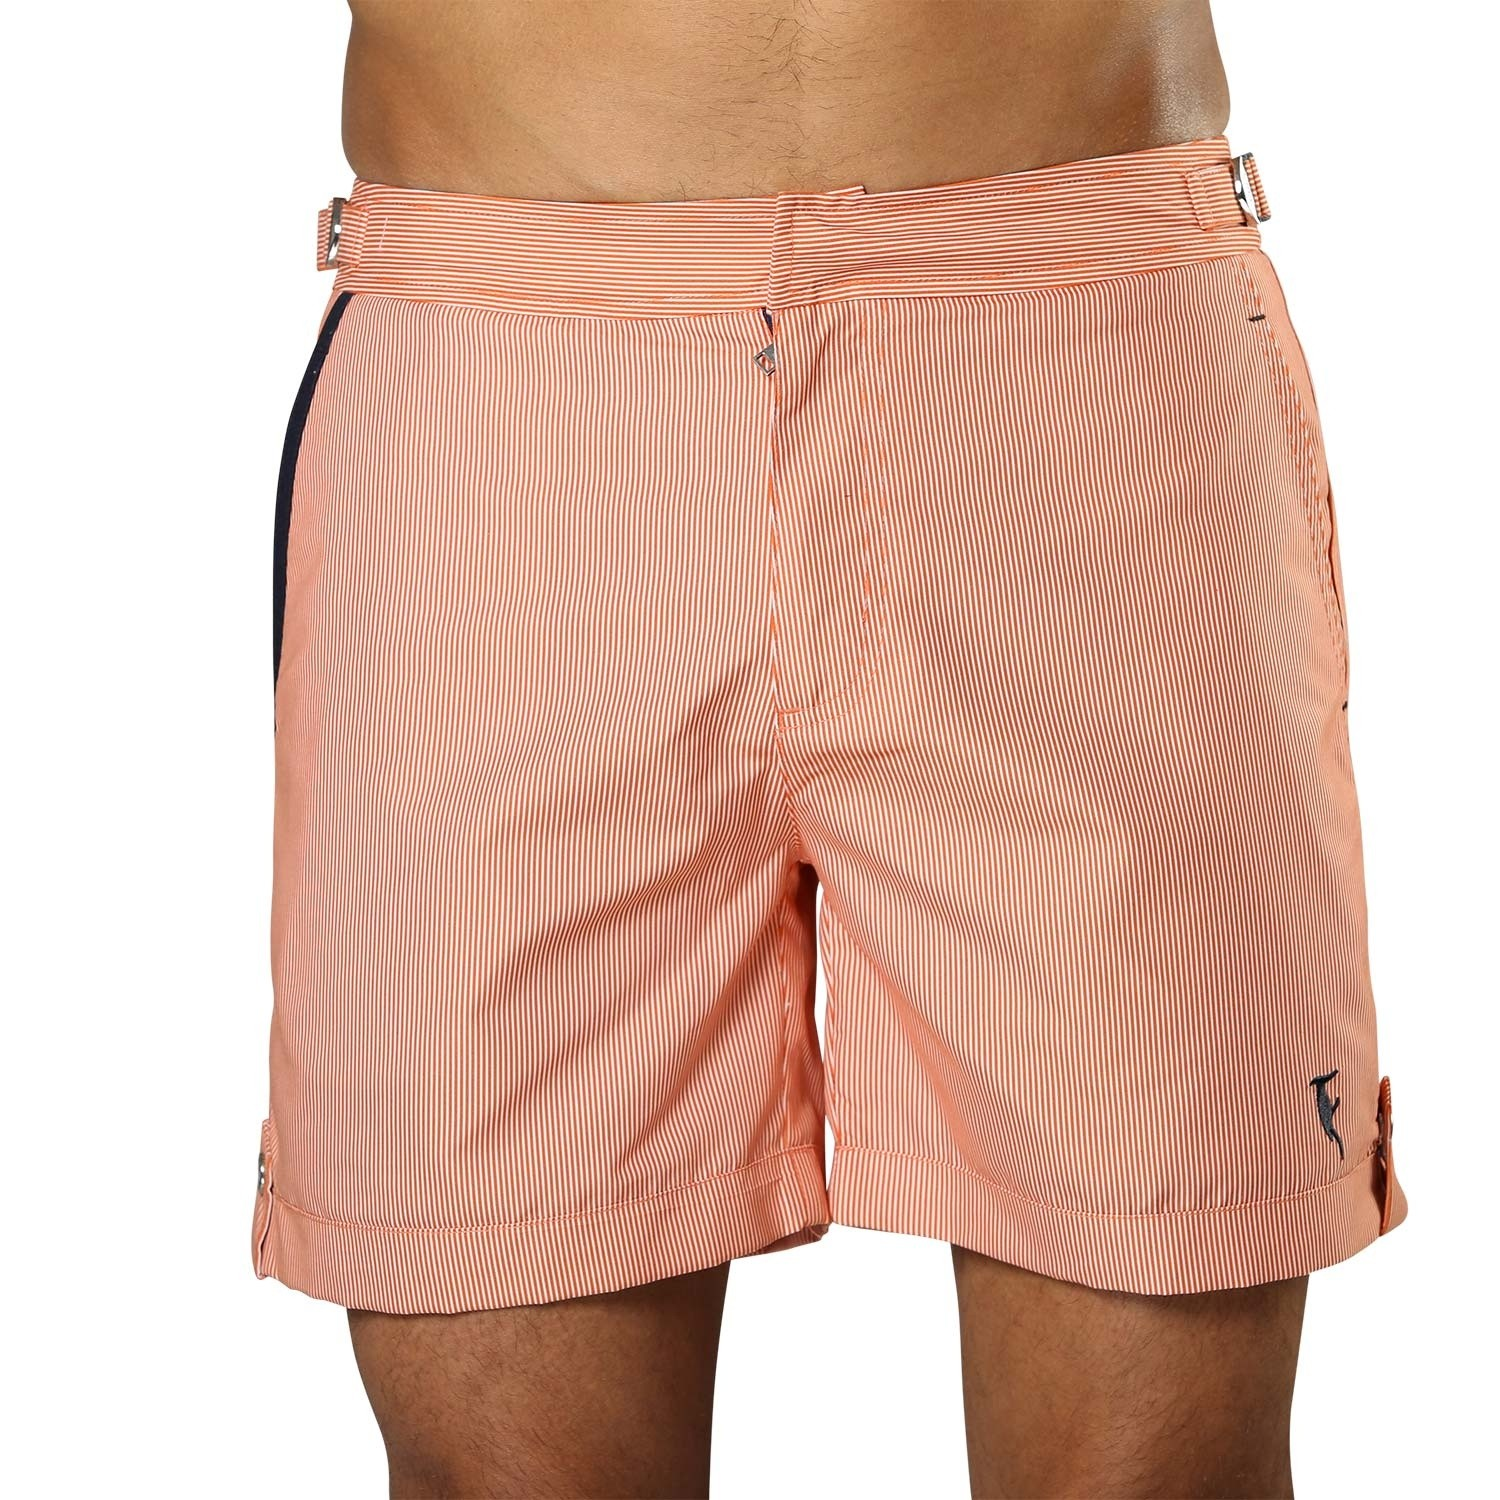 Swim Short Tampa Stripes Tangerine Orange